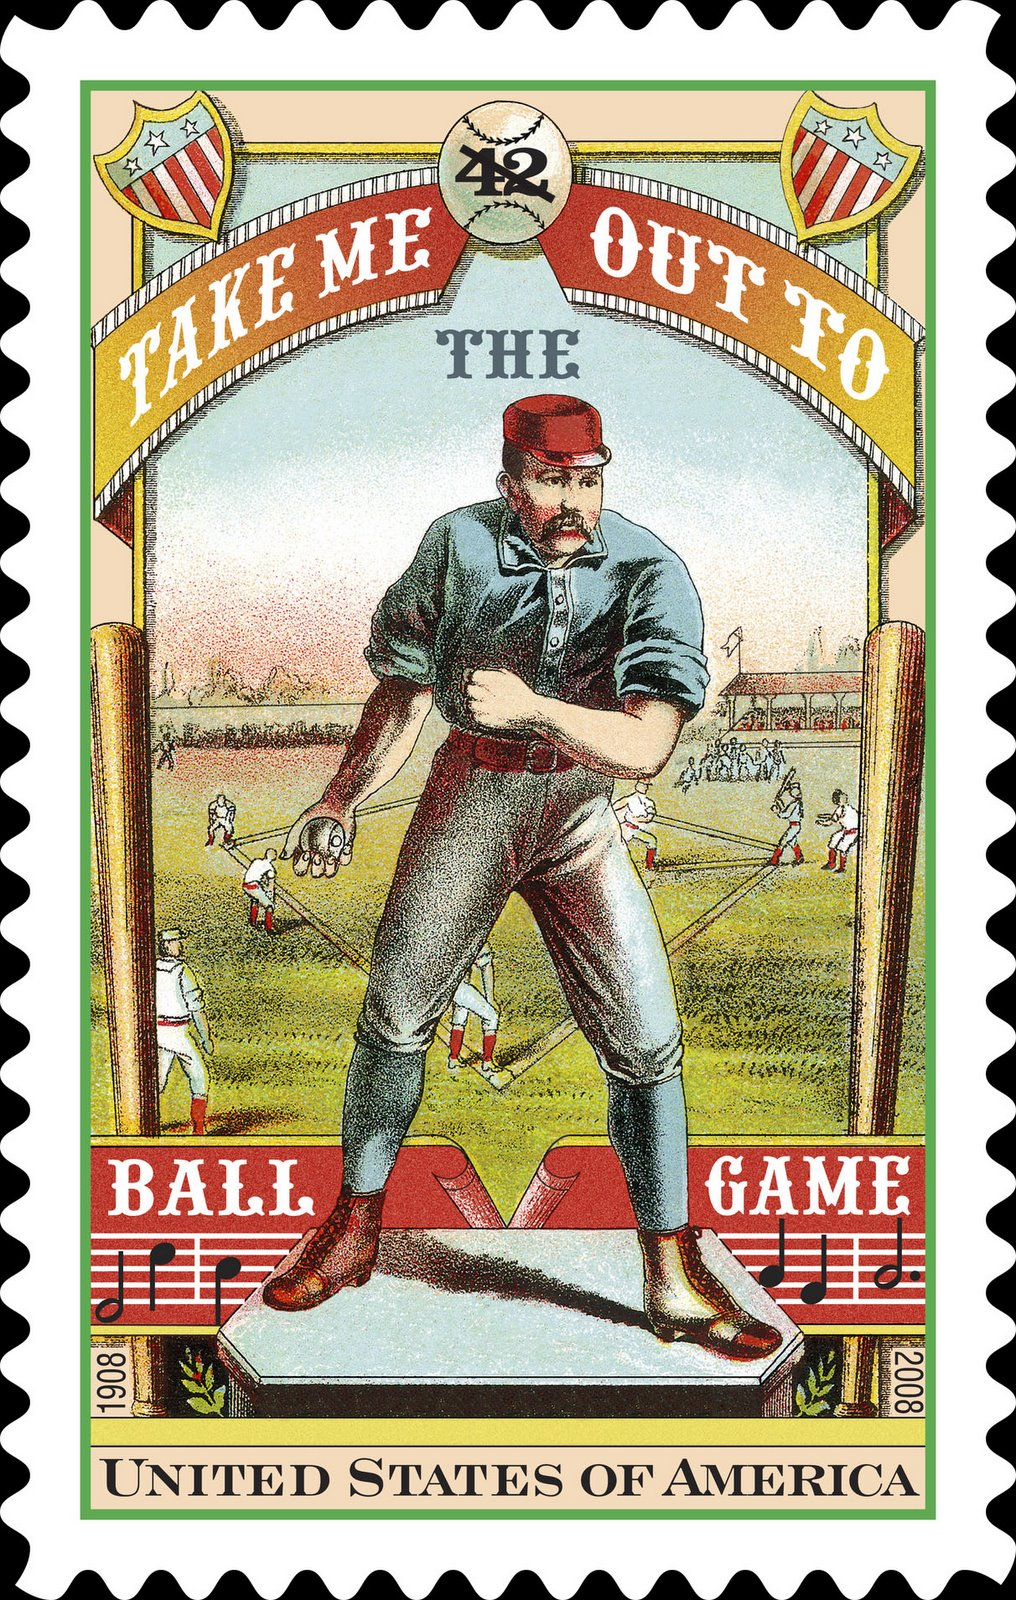 Take me out to the ball game folksongindex com